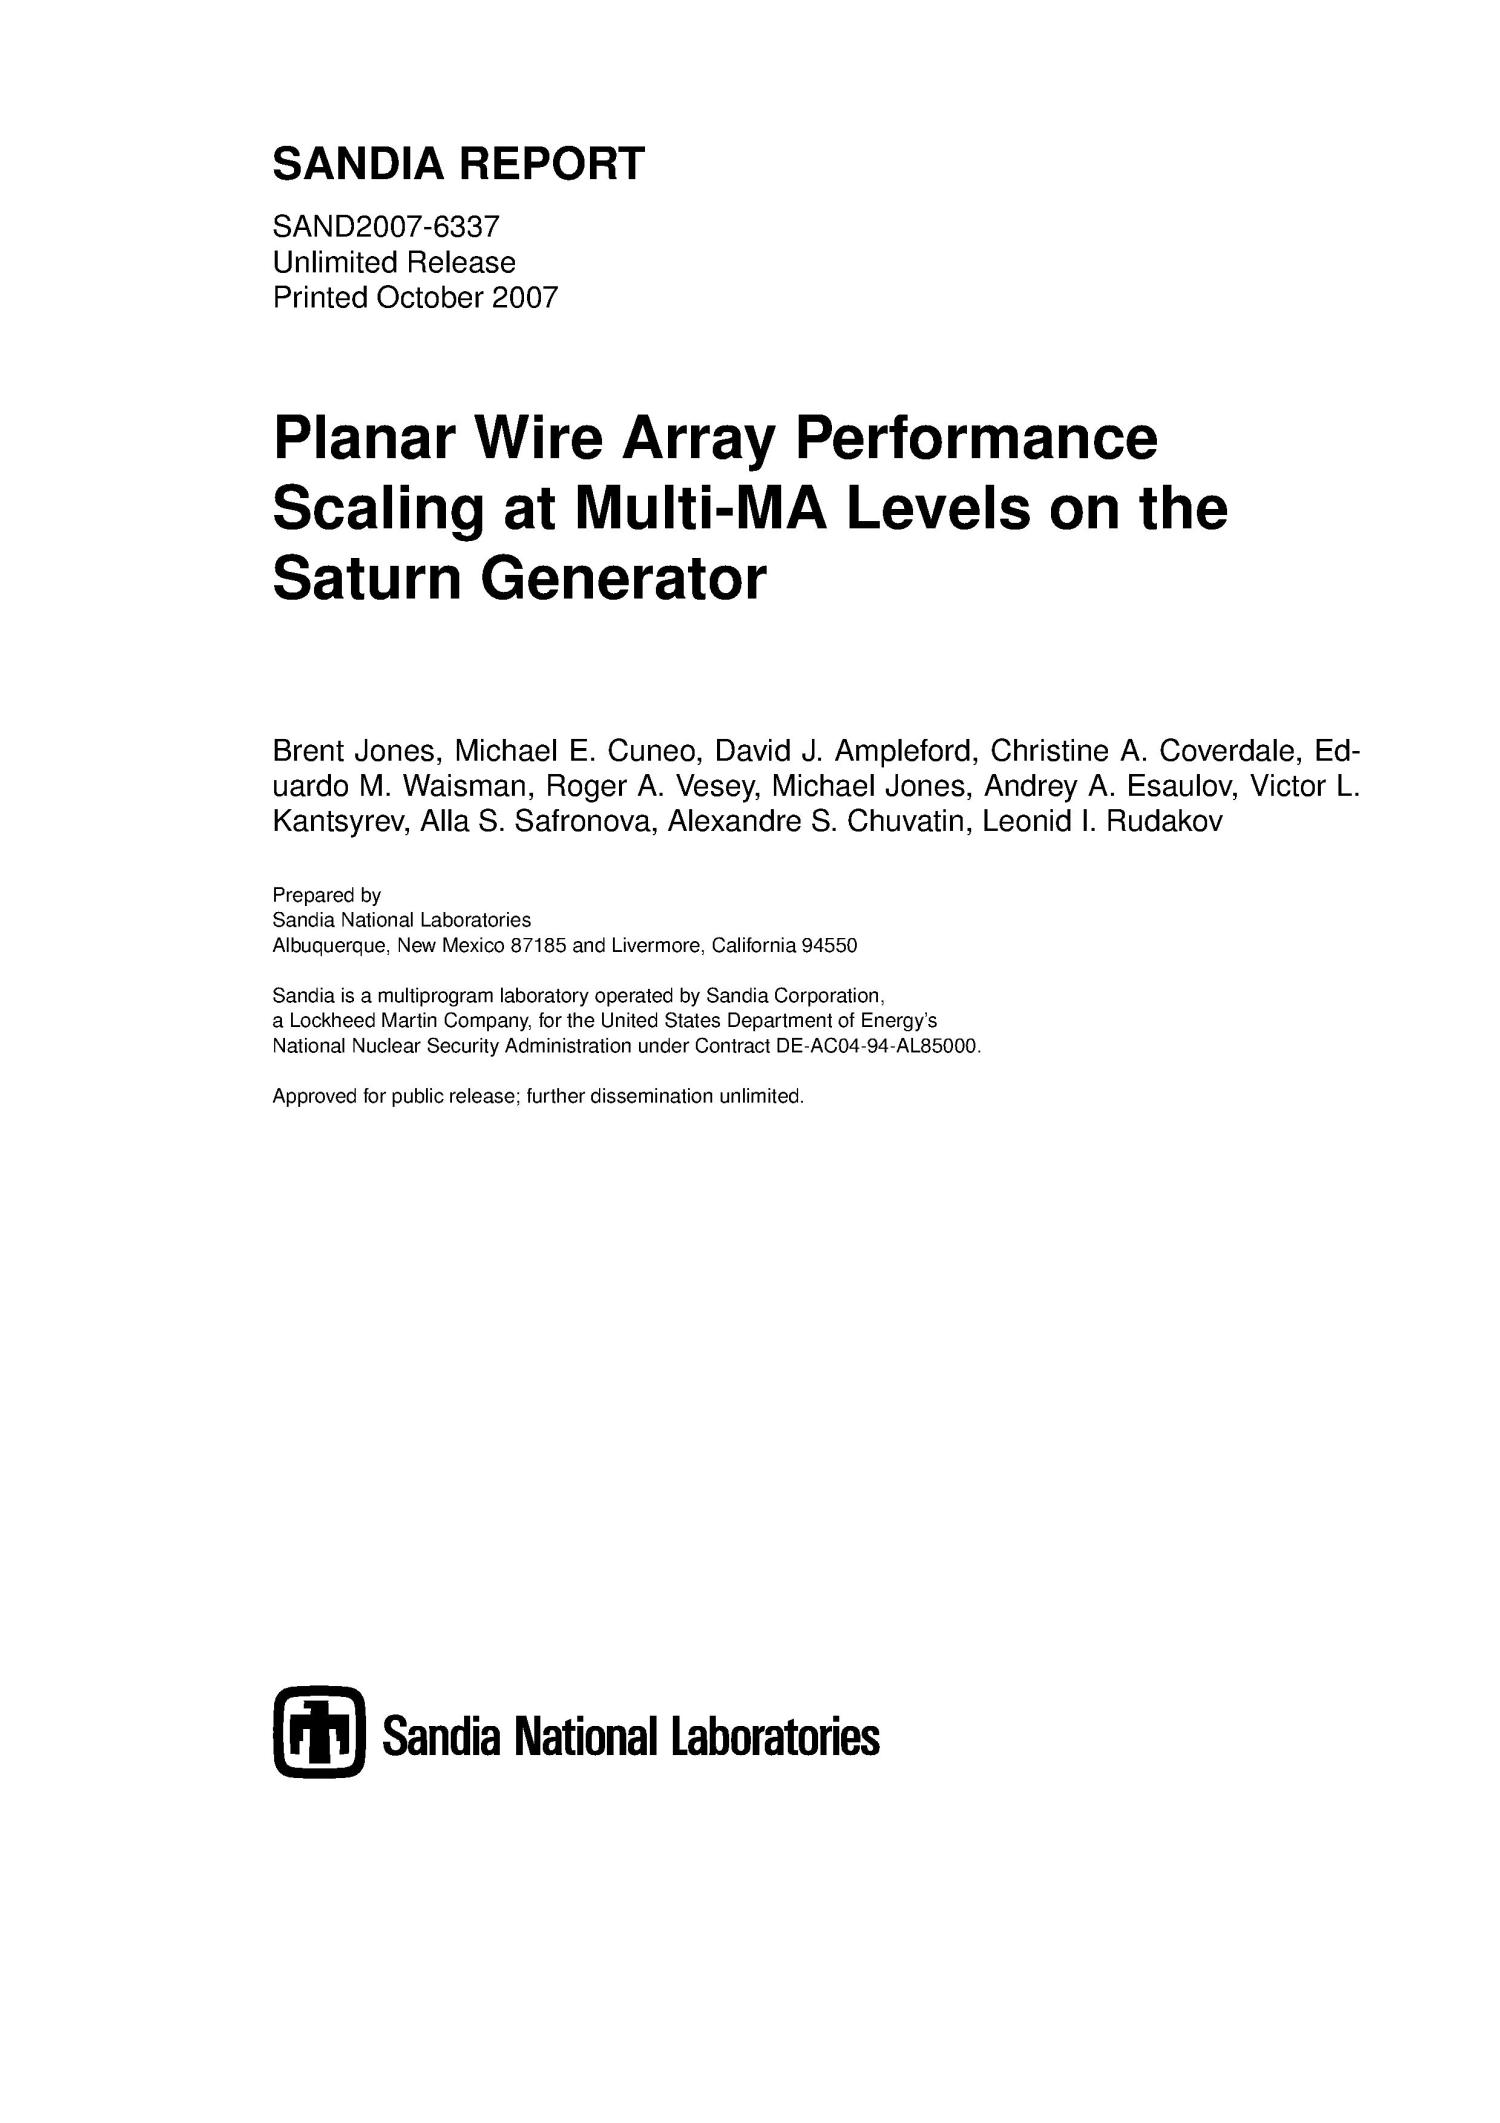 Planar wire array performance scaling at multi-MA levels on the Saturn generator.                                                                                                      [Sequence #]: 1 of 62